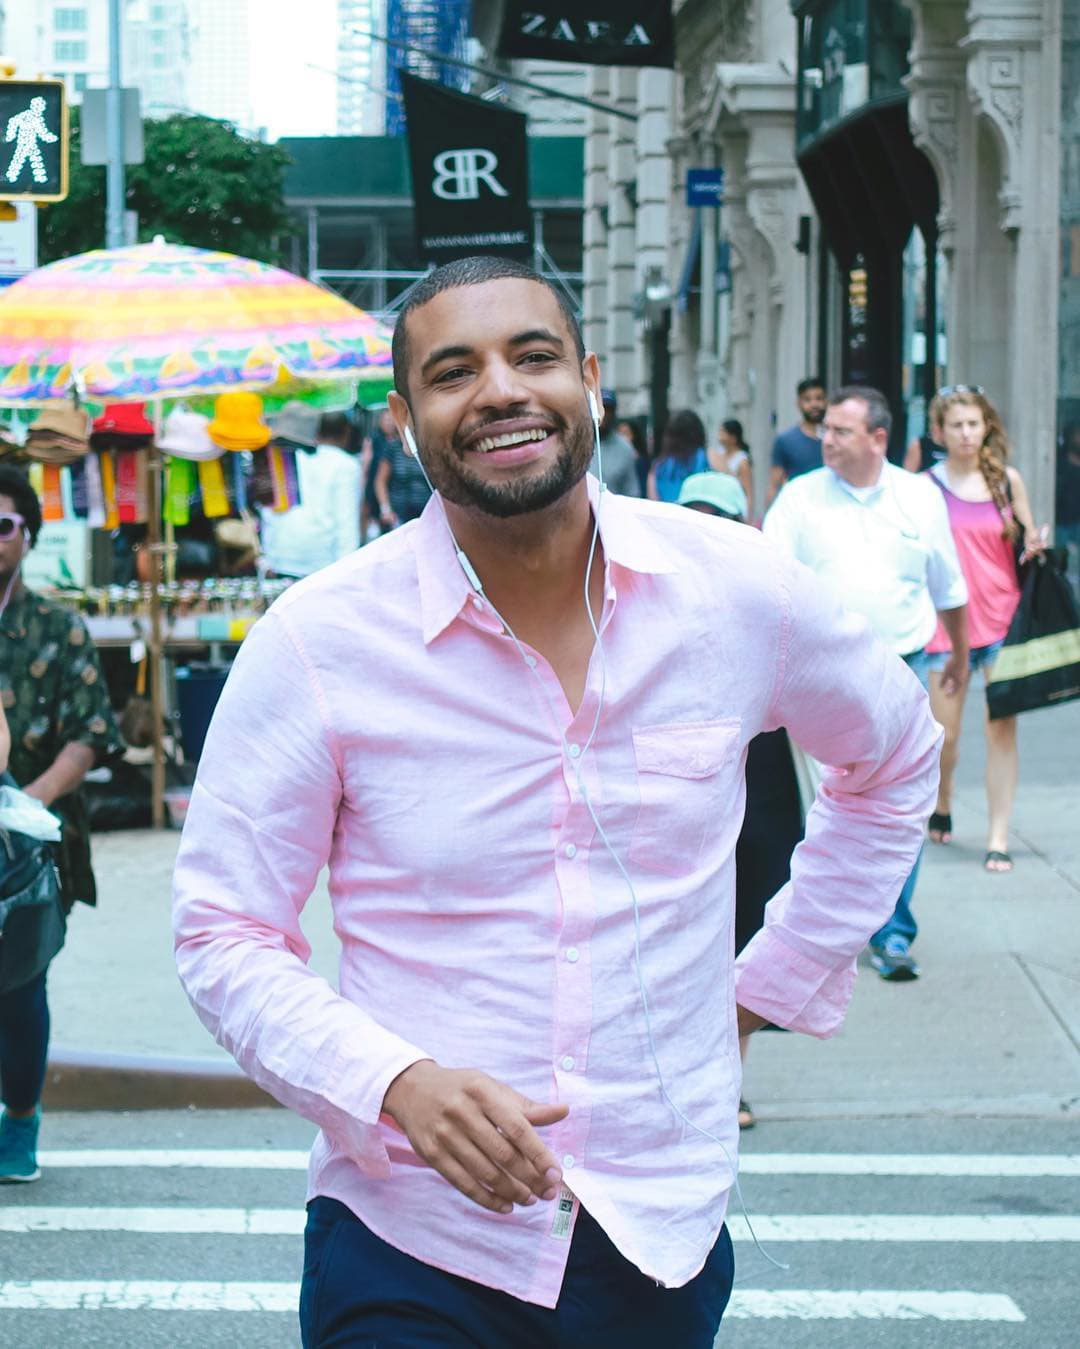 man crossing nyc street with swagger and smile on his face